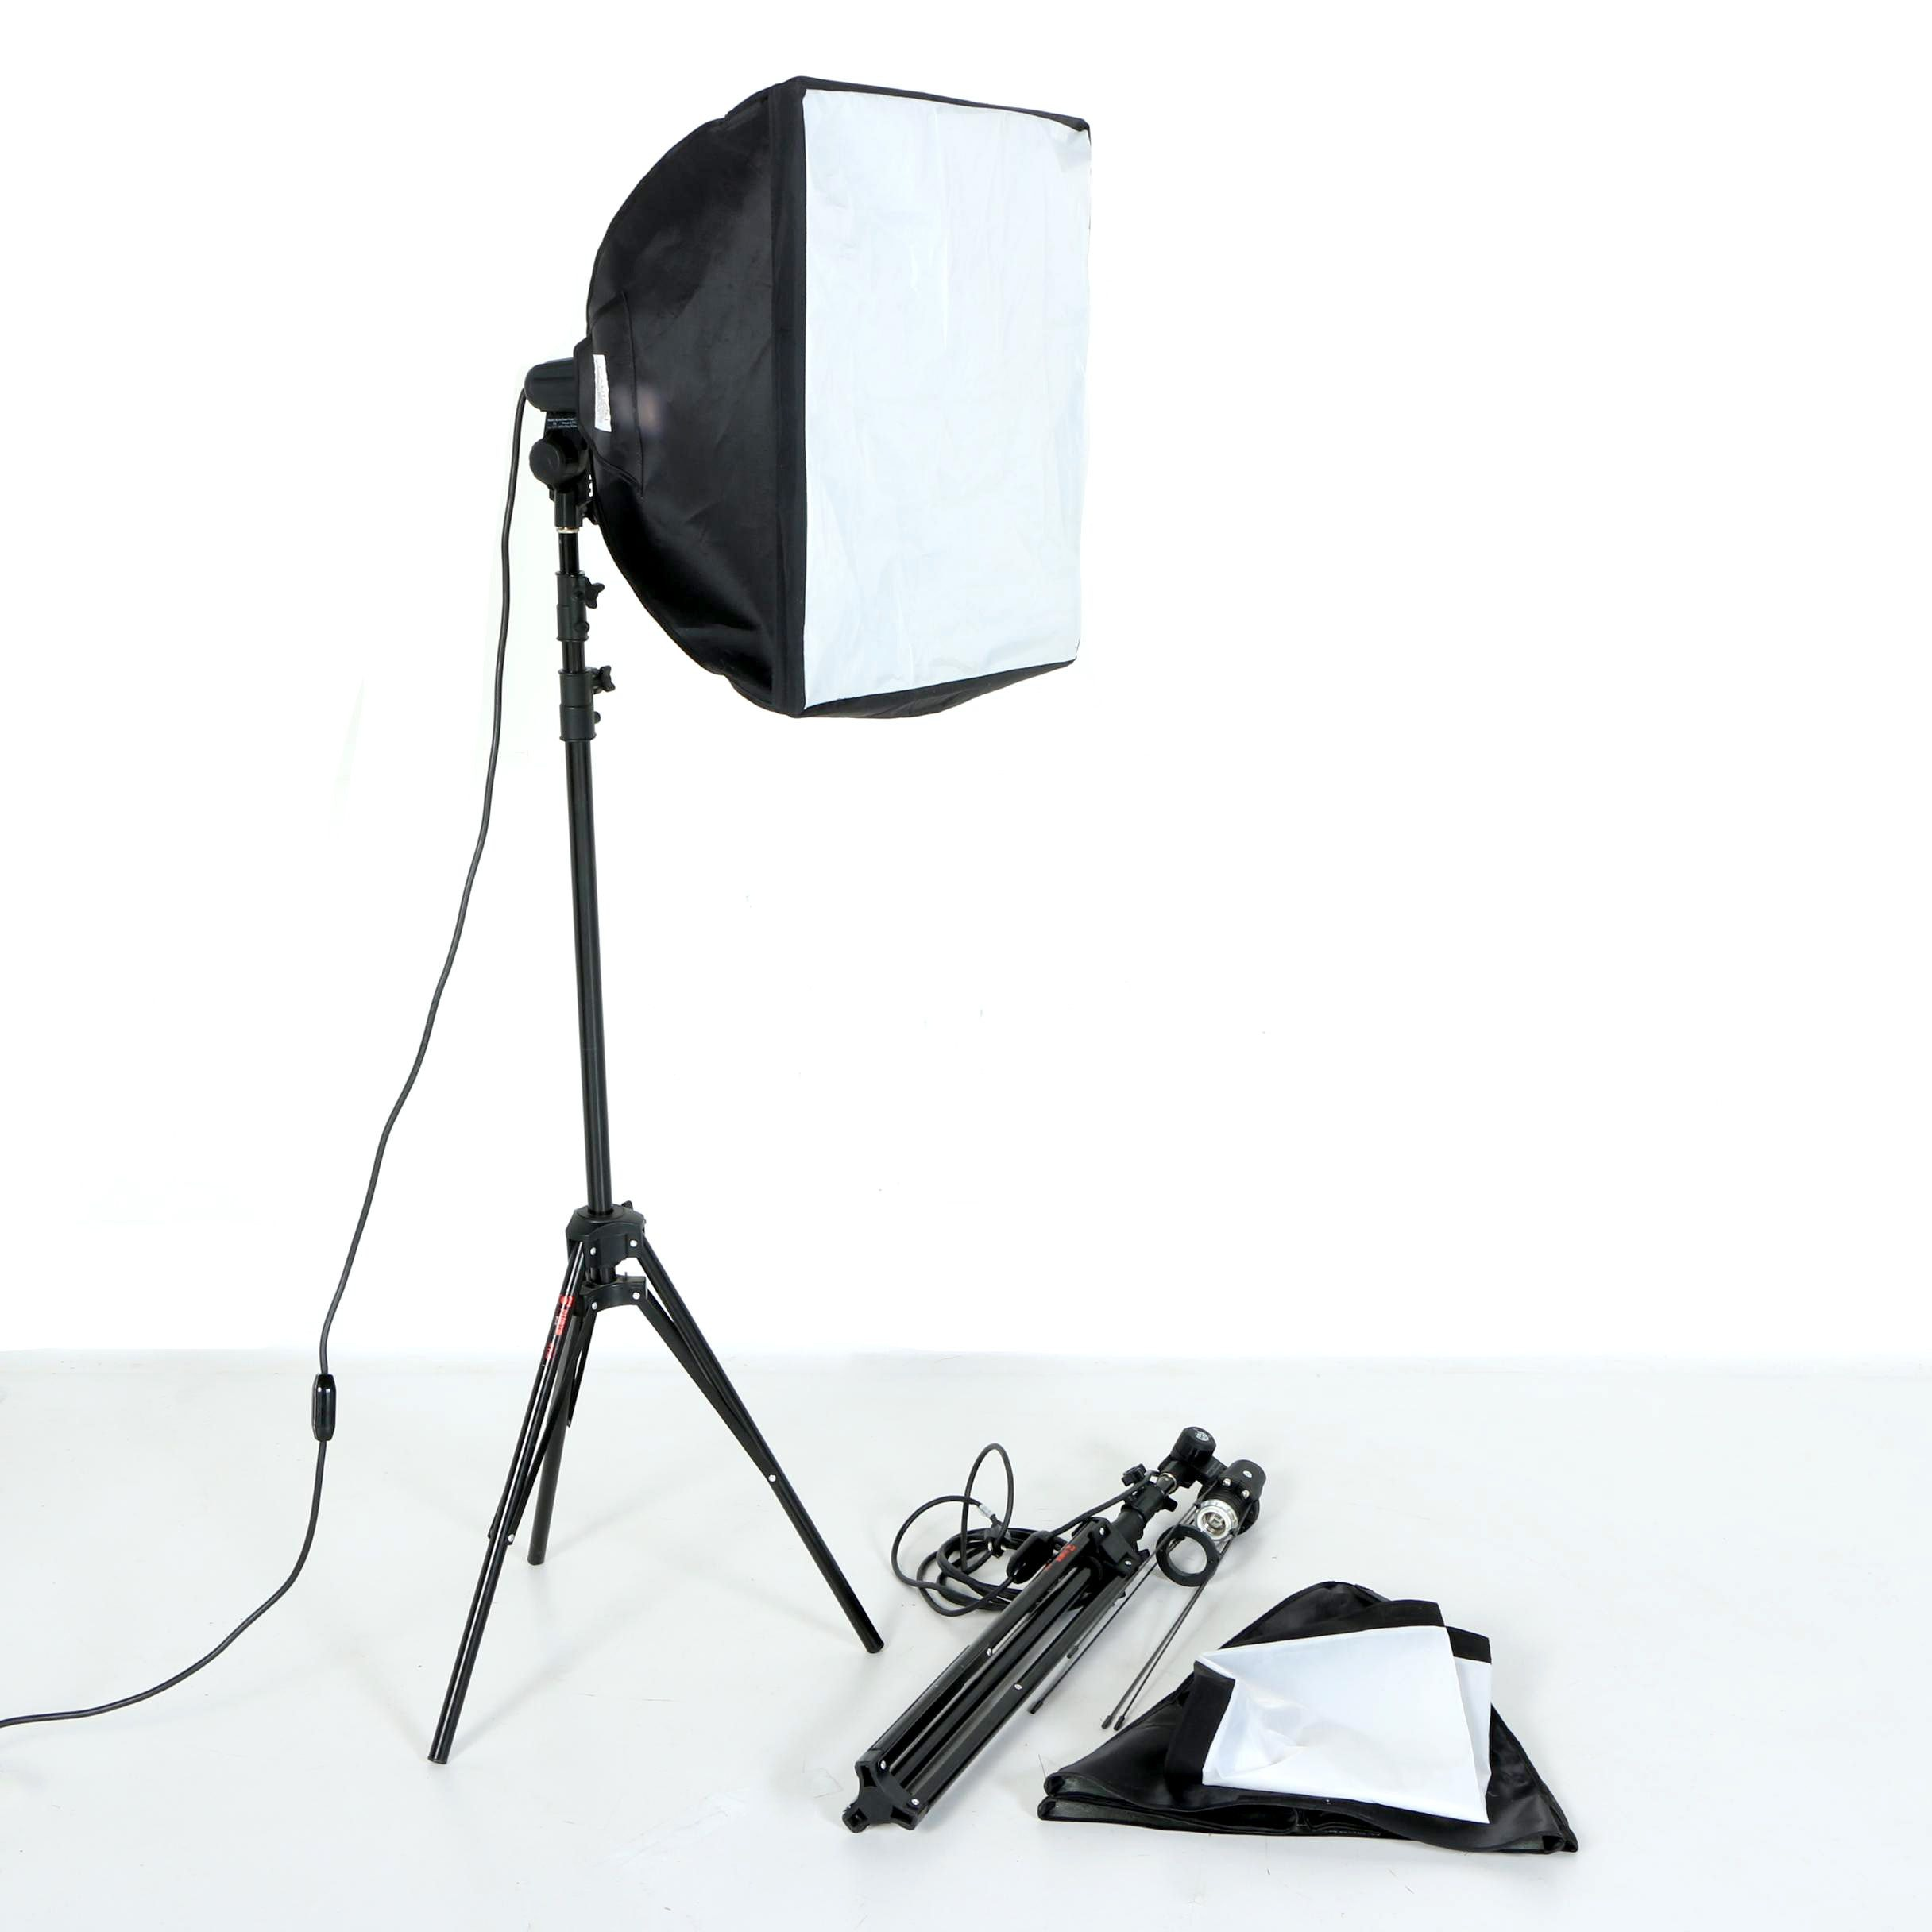 Pair Westcott Photo Basics Softboxes, Continuous Lights, and Telescopic Stands